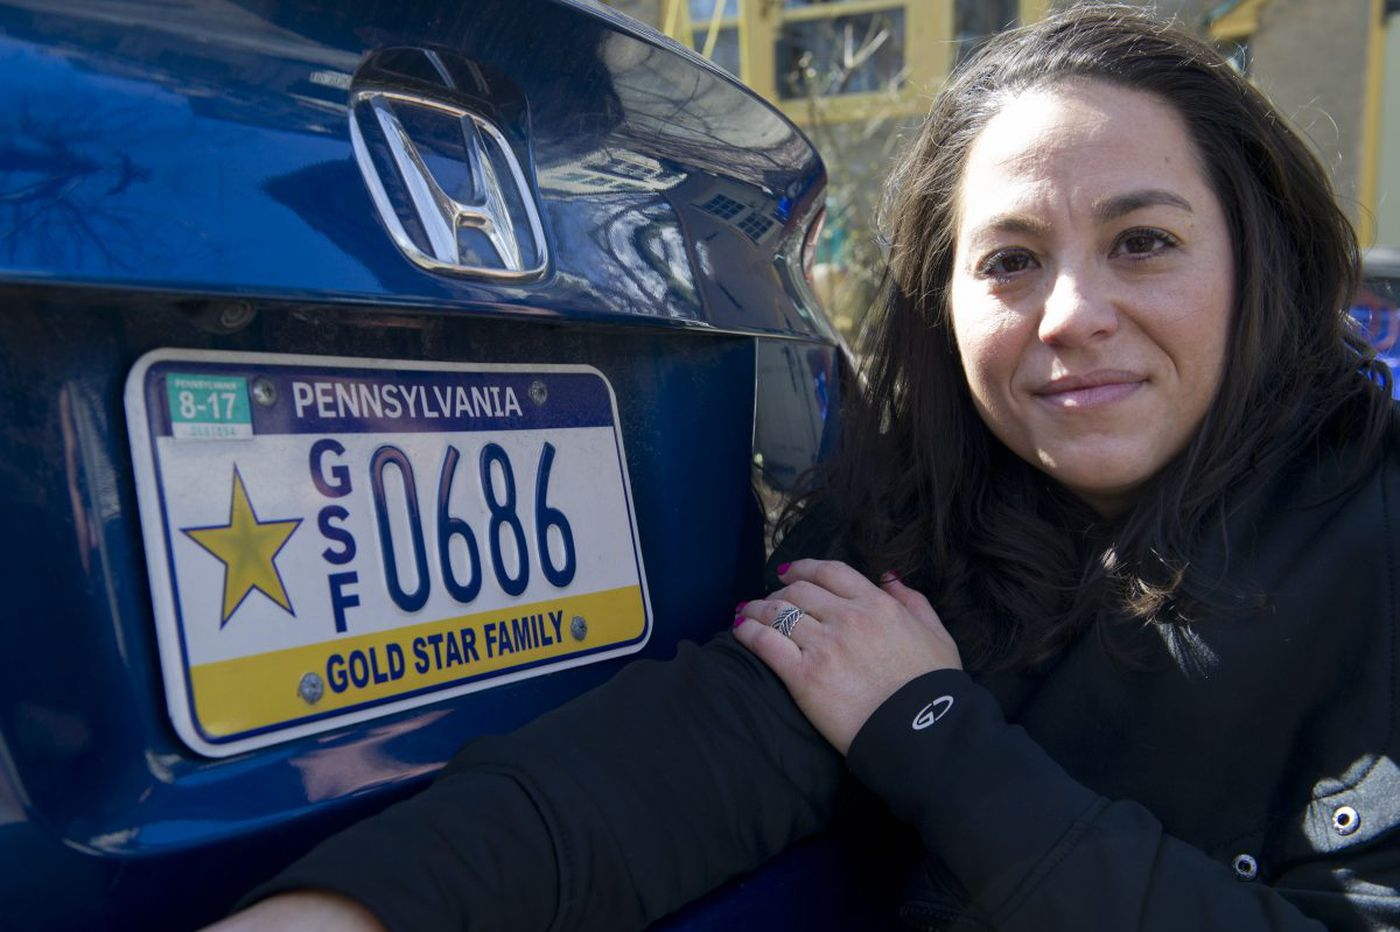 A note left on someone's car led me to a sister's love for her fallen Marine brother   Helen Ubiñas